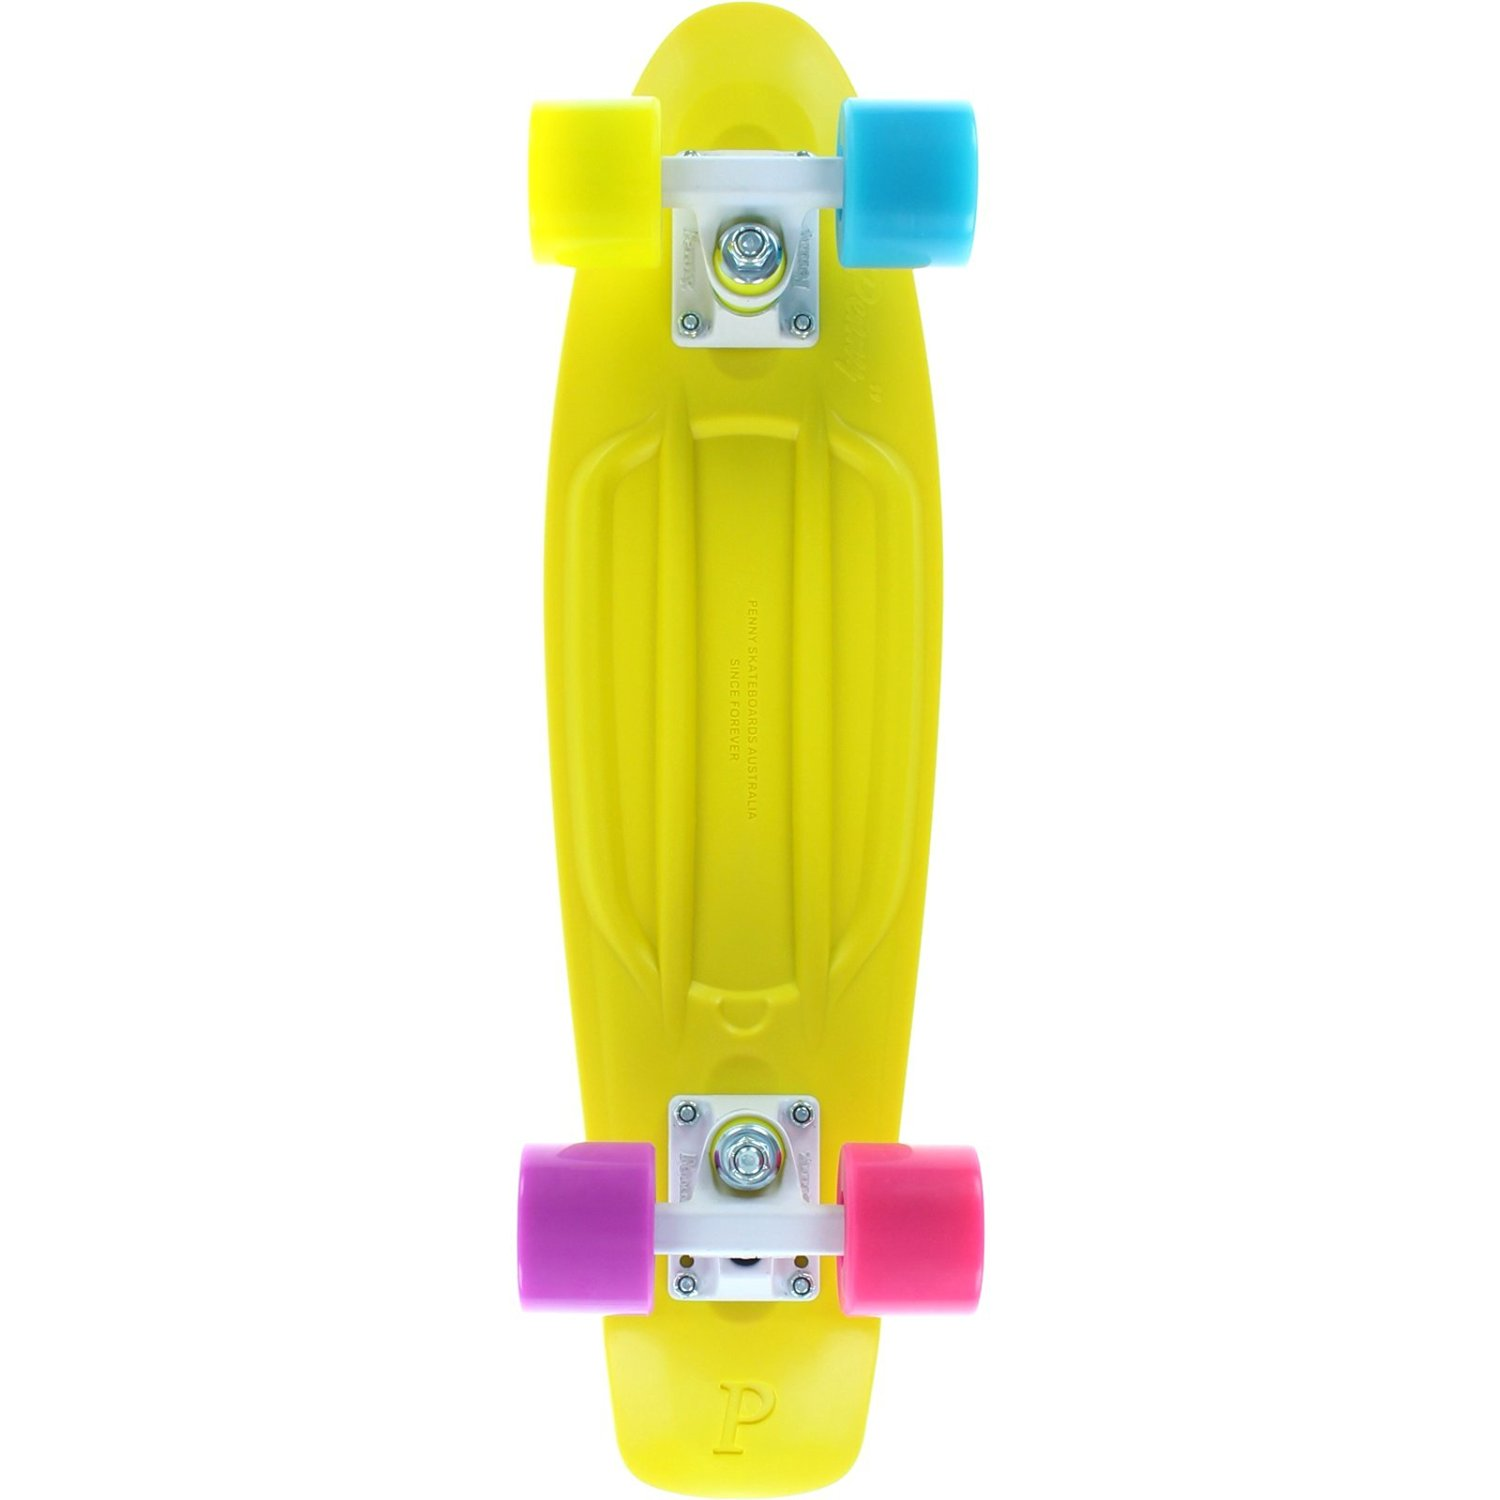 "Penny 22"" in Candy Coated Yellow - Complete Skateboard - 100% Brand New Original!"